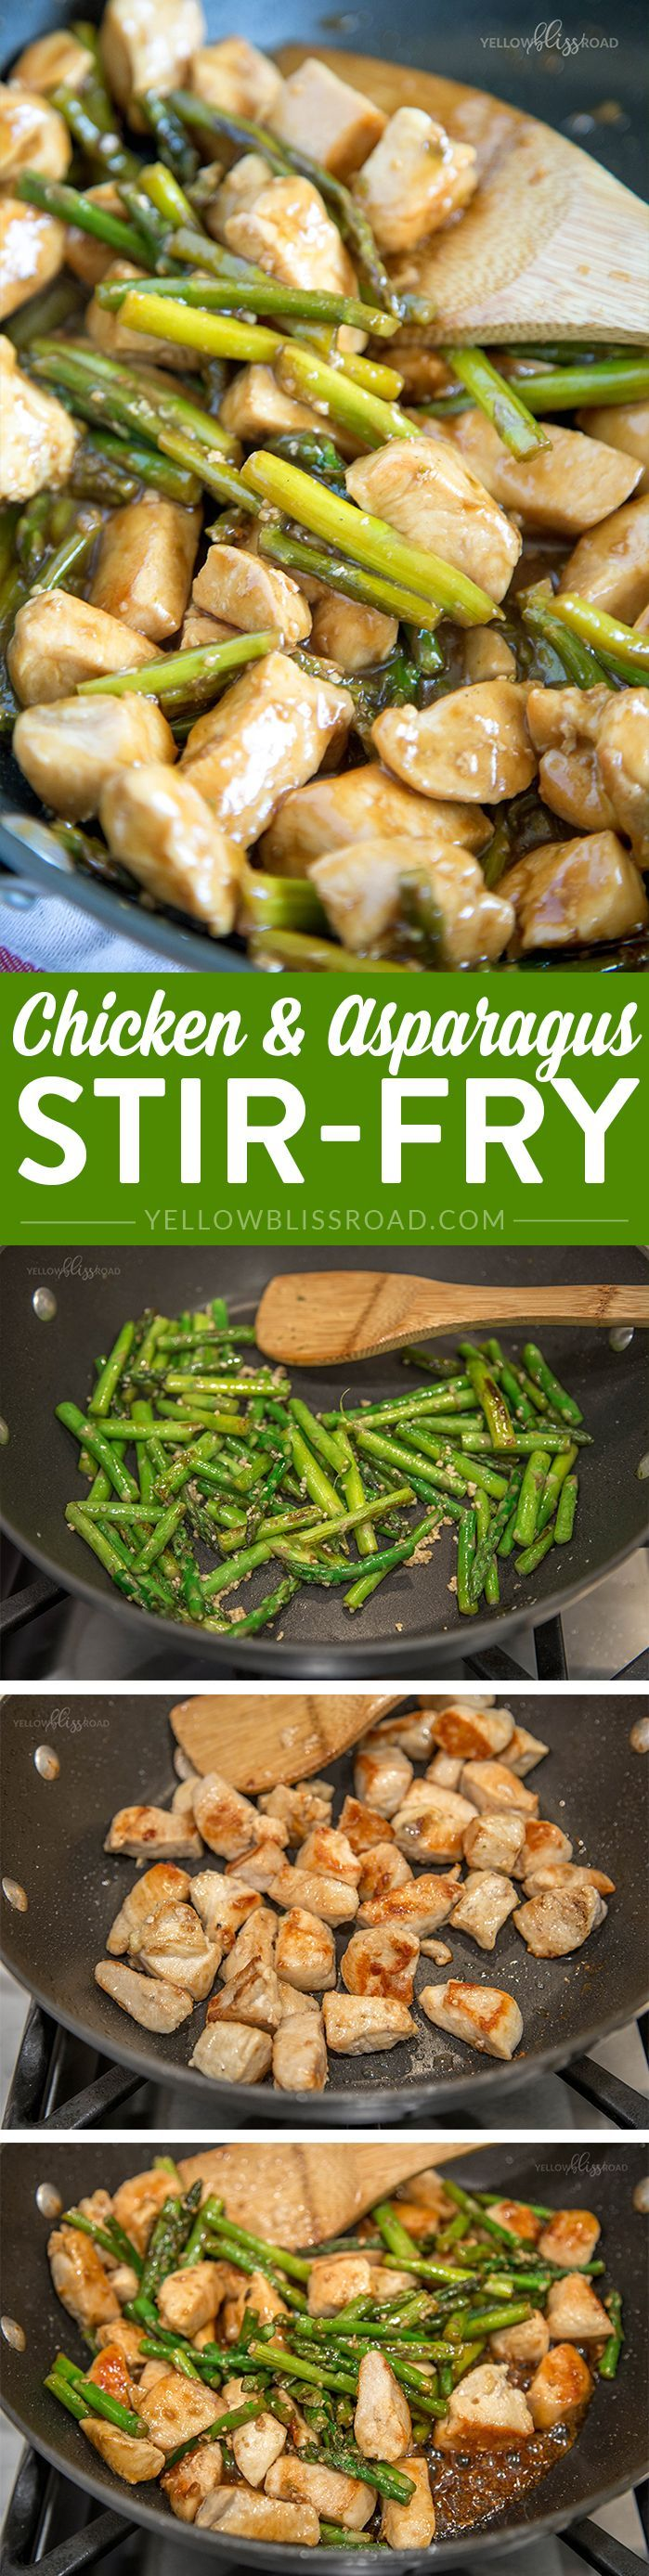 Chicken and asparagus stir fry recipe asparagus stir fry asparagus chicken asparagus stir fry ccuart Gallery